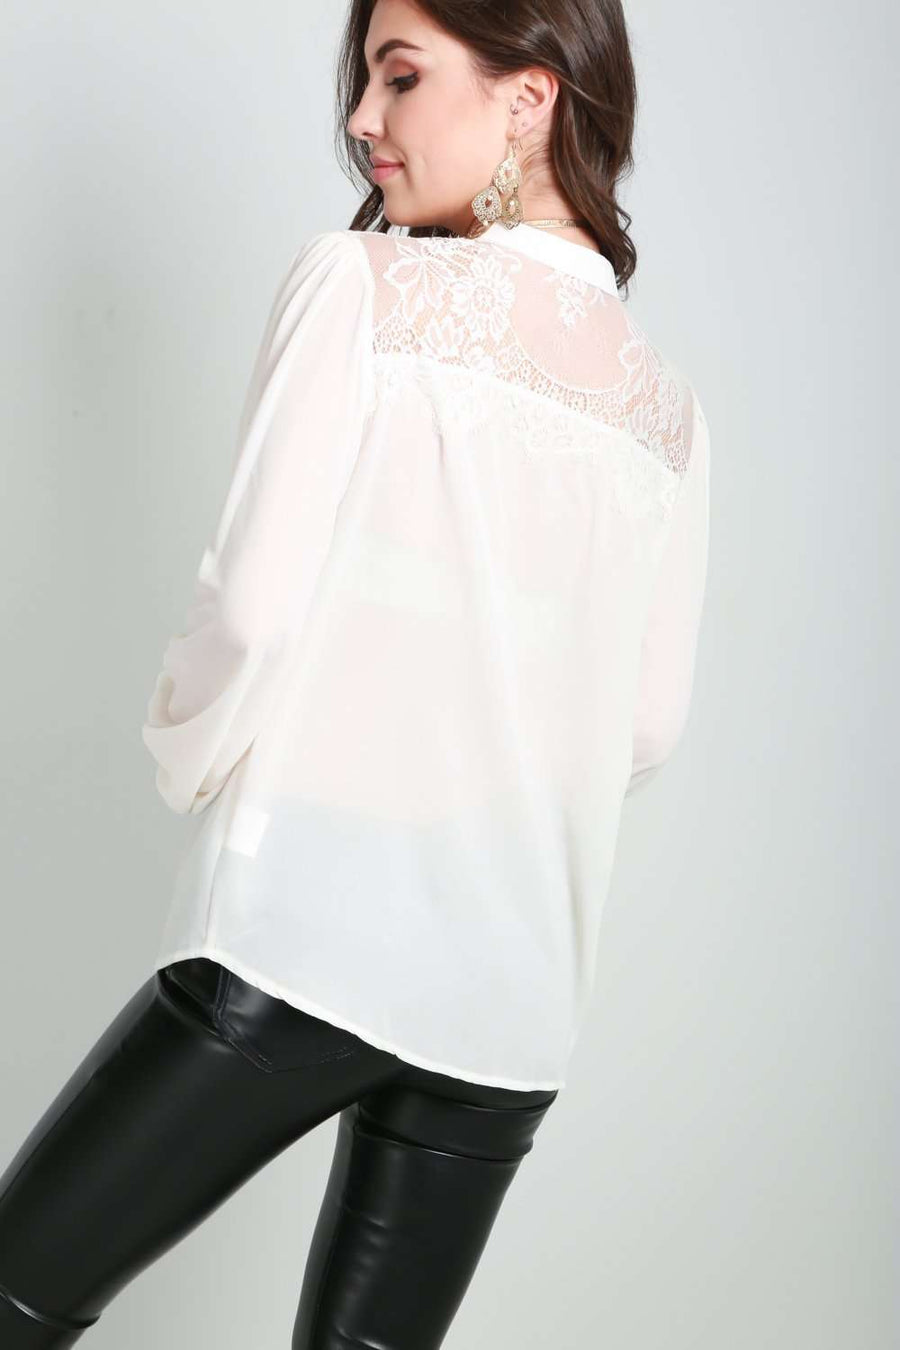 Pammie Button Down Blouse - bejealous-com